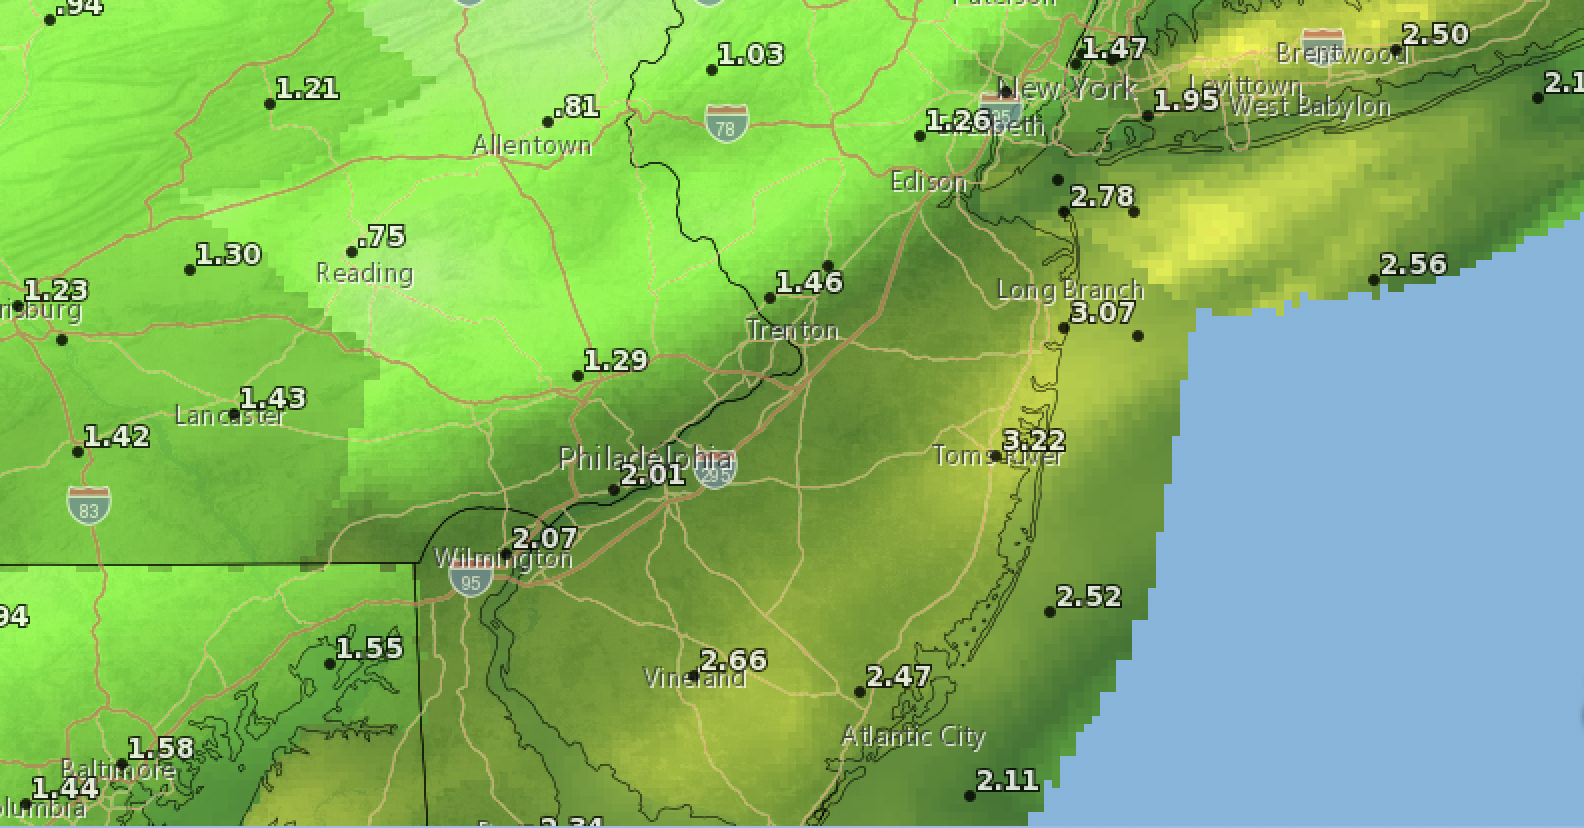 Rain forecast to fall between July 1-2, 2021. (Credit: NWS)